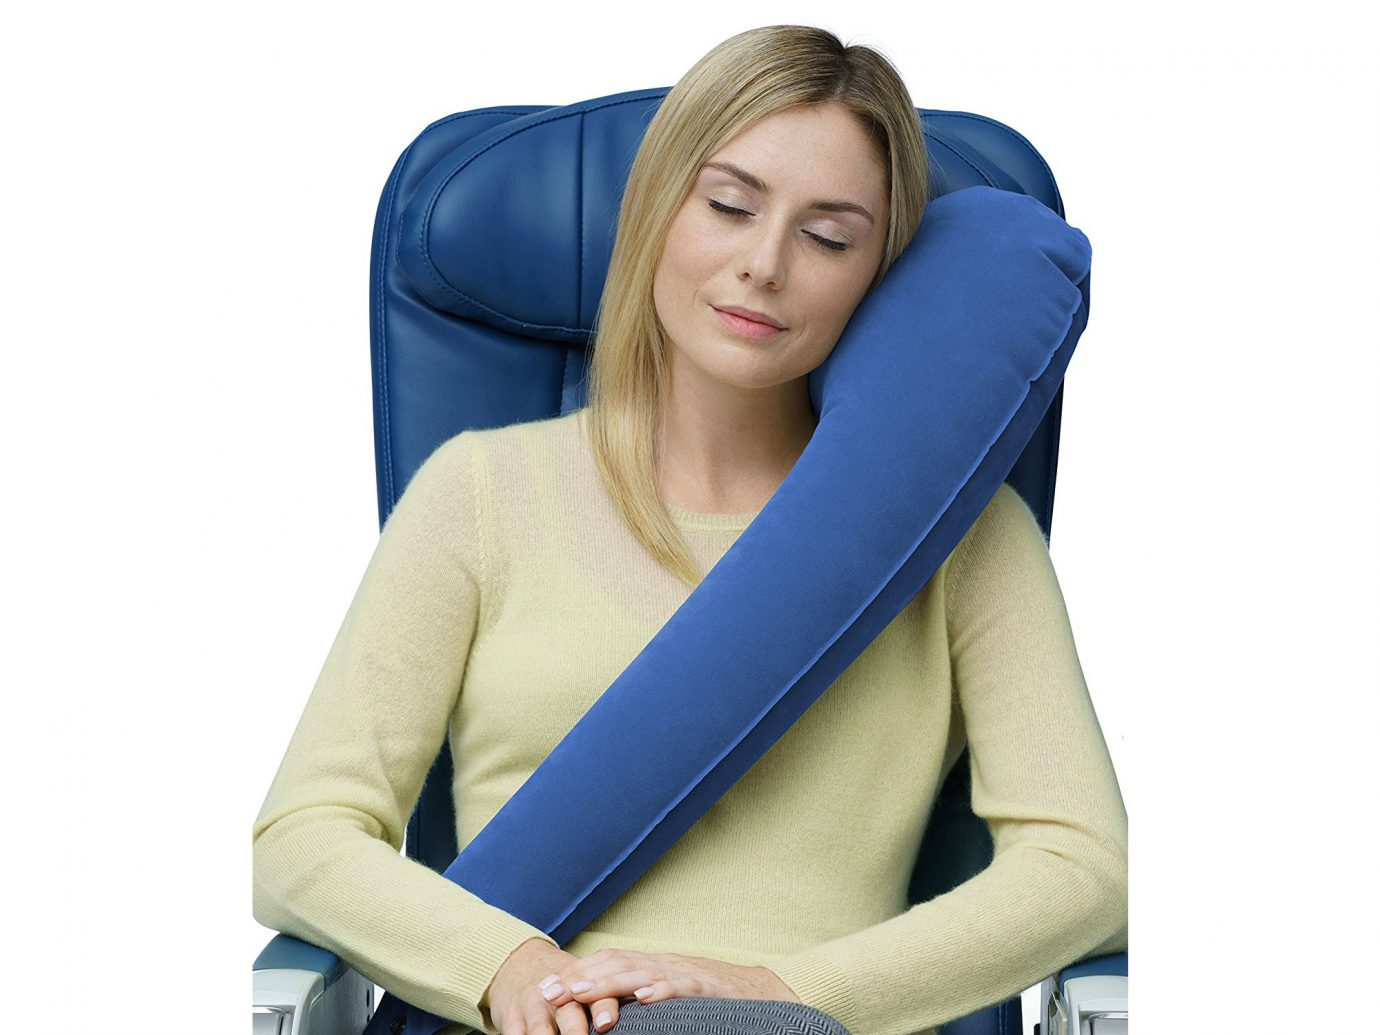 Woman resting against Blue Travelrest Ultimate Travel Pillow